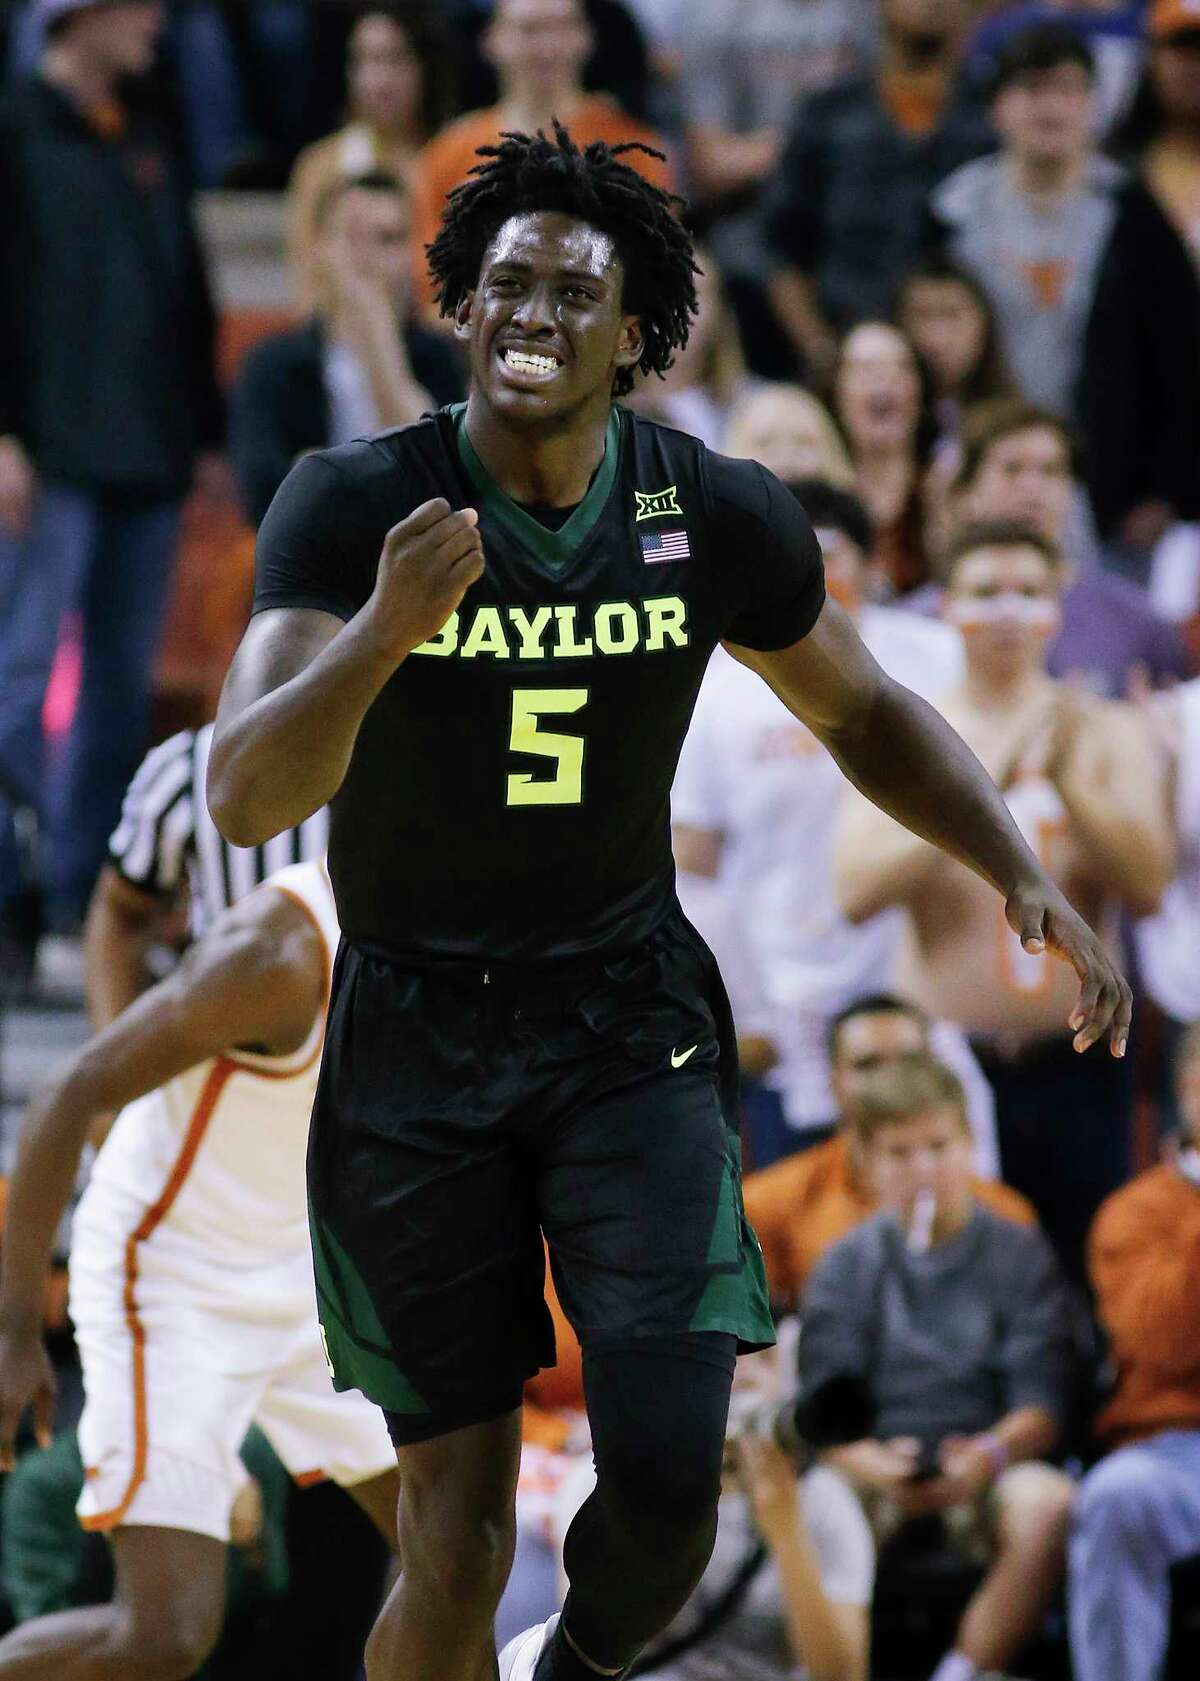 AUSTIN, TX - MARCH 4: Johnathan Motley #5 of the Baylor Bears reacts as his team plays the Texas Longhorns at the Frank Erwin Center on March 4, 2017 in Austin, Texas. (Photo by Chris Covatta/Getty Images)